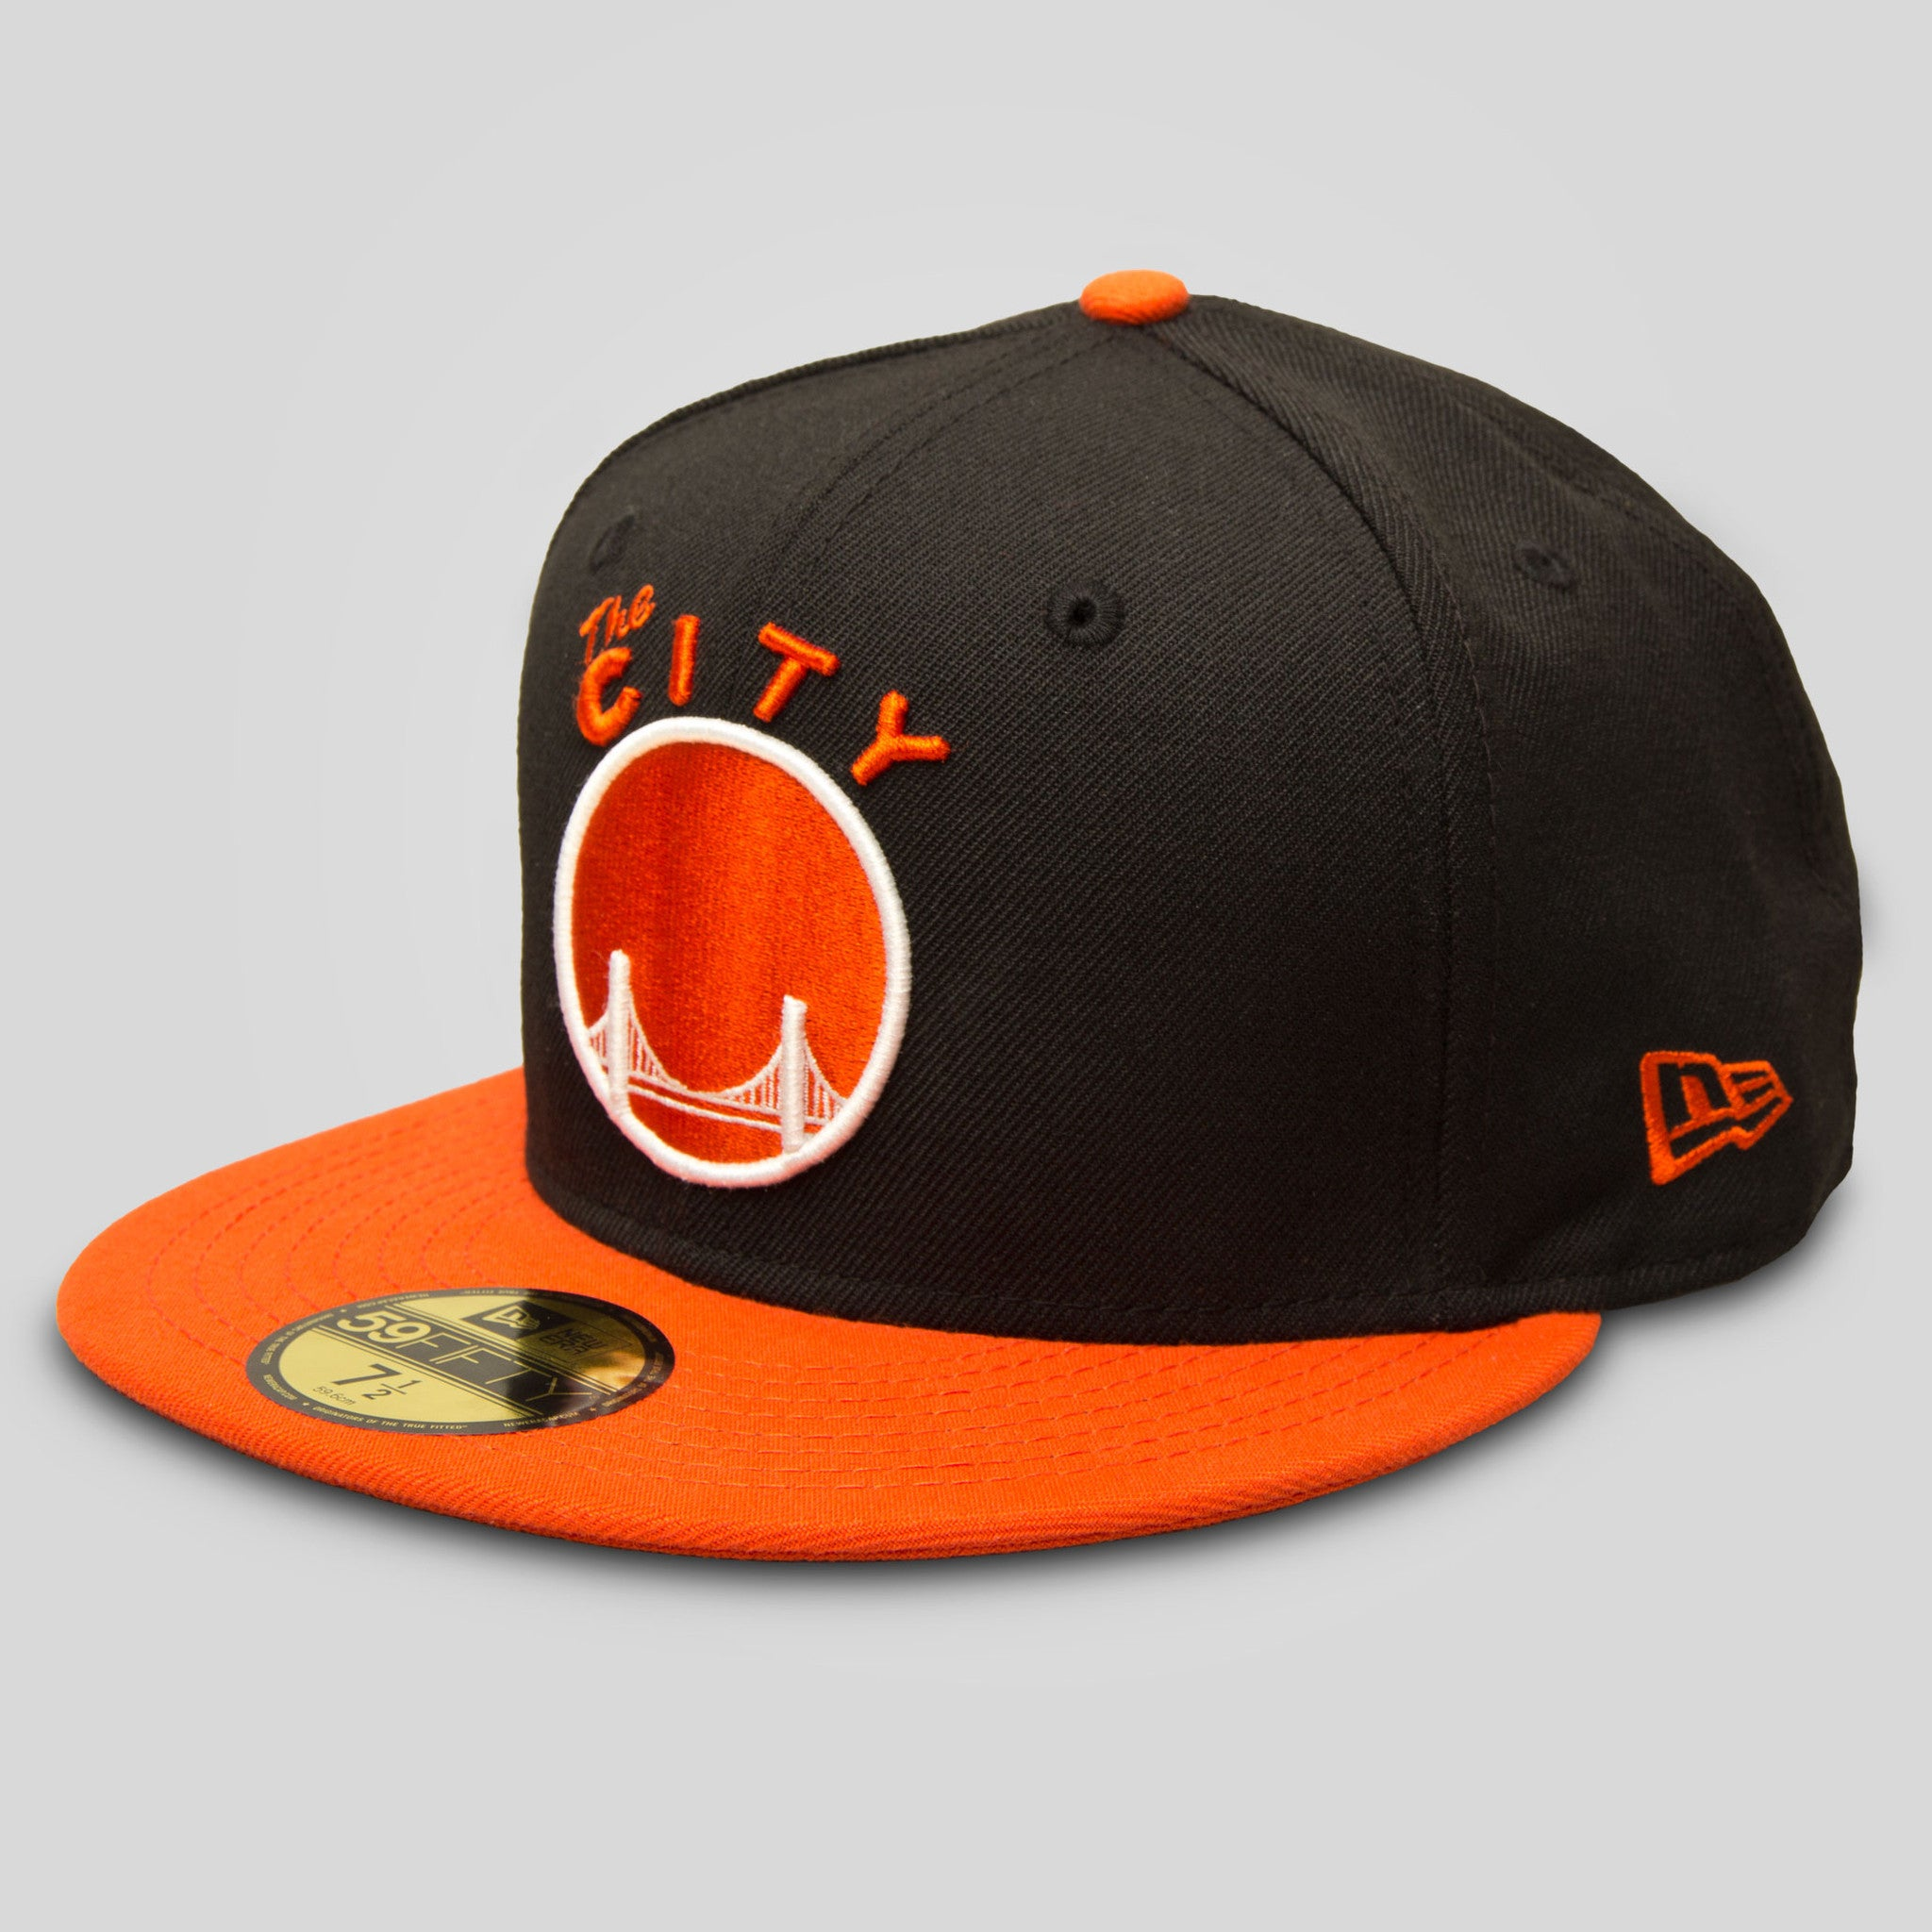 b52e8646cb5 Upper Playground - Lux - THE CITY New Era Fitted Cap in Black Orange